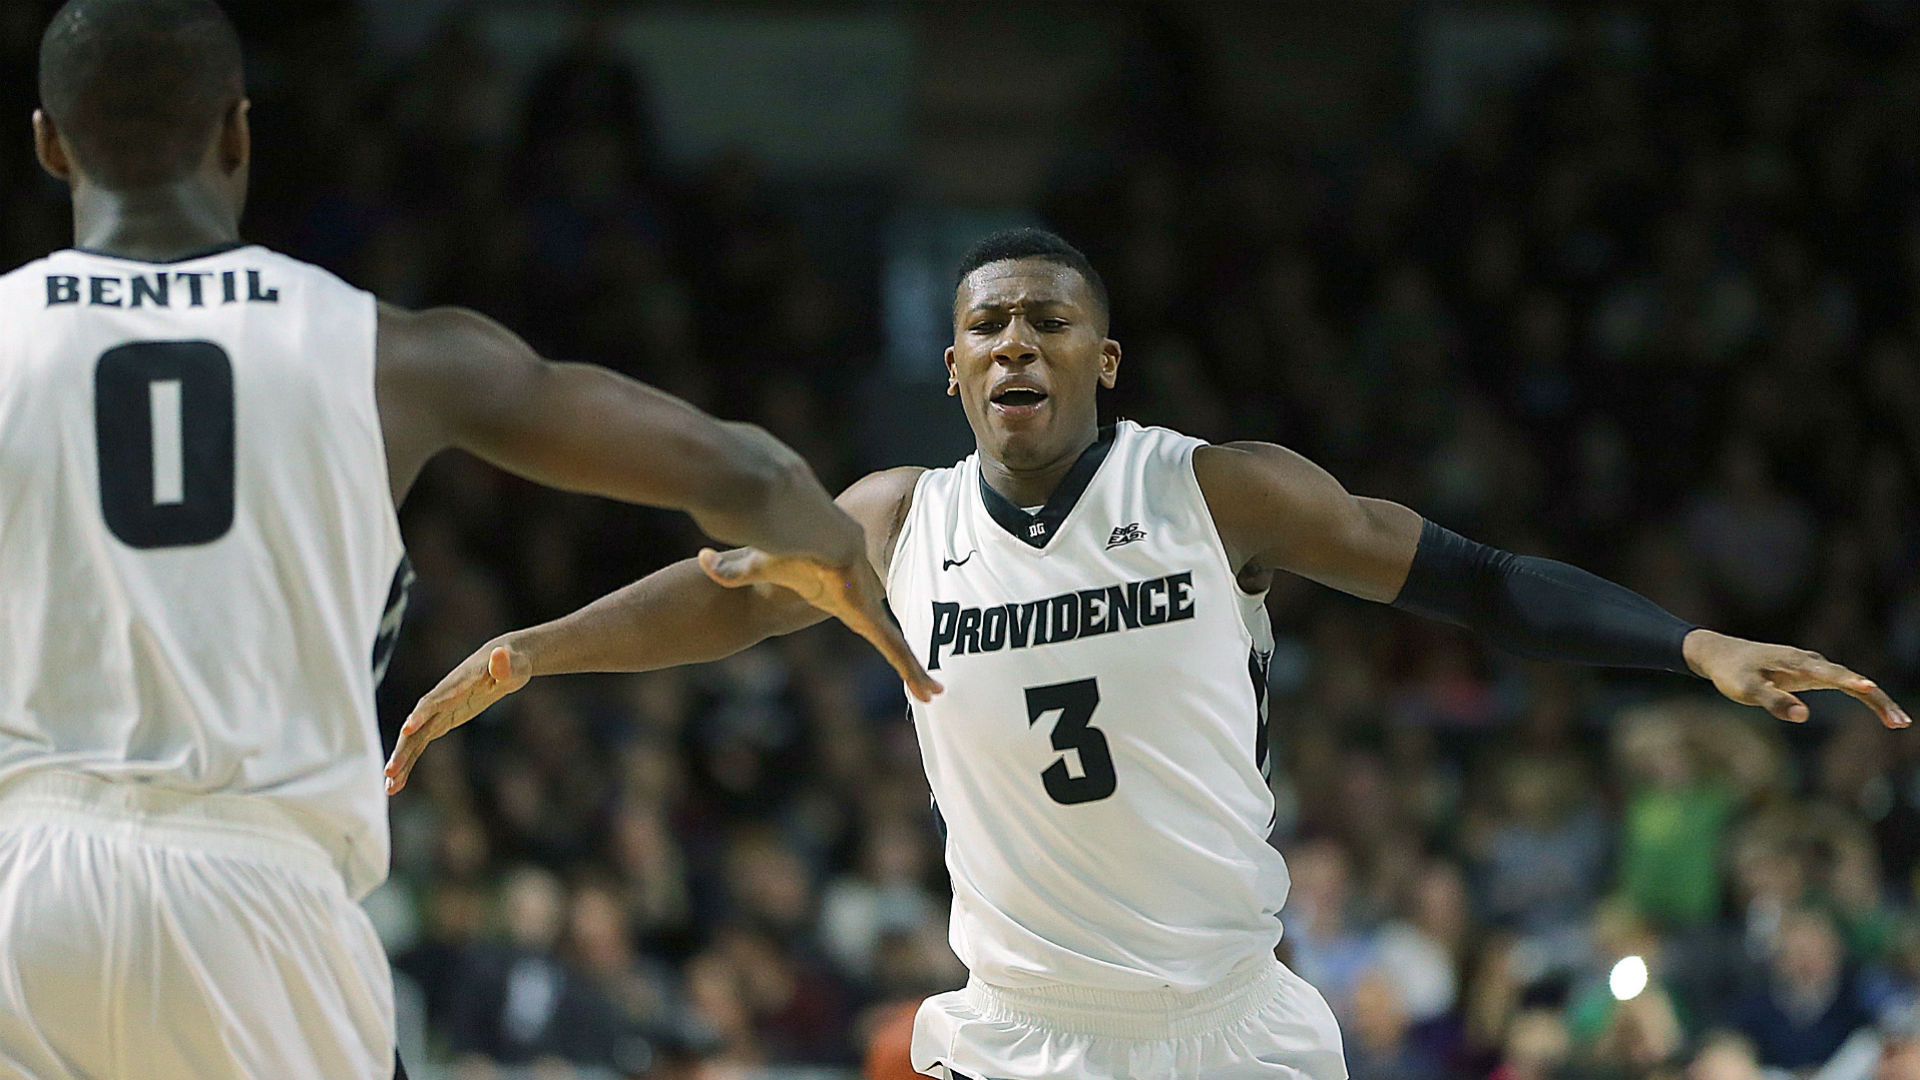 Bentil, No. 16 Providence beat No. 4 Villanova 82-76 in OT